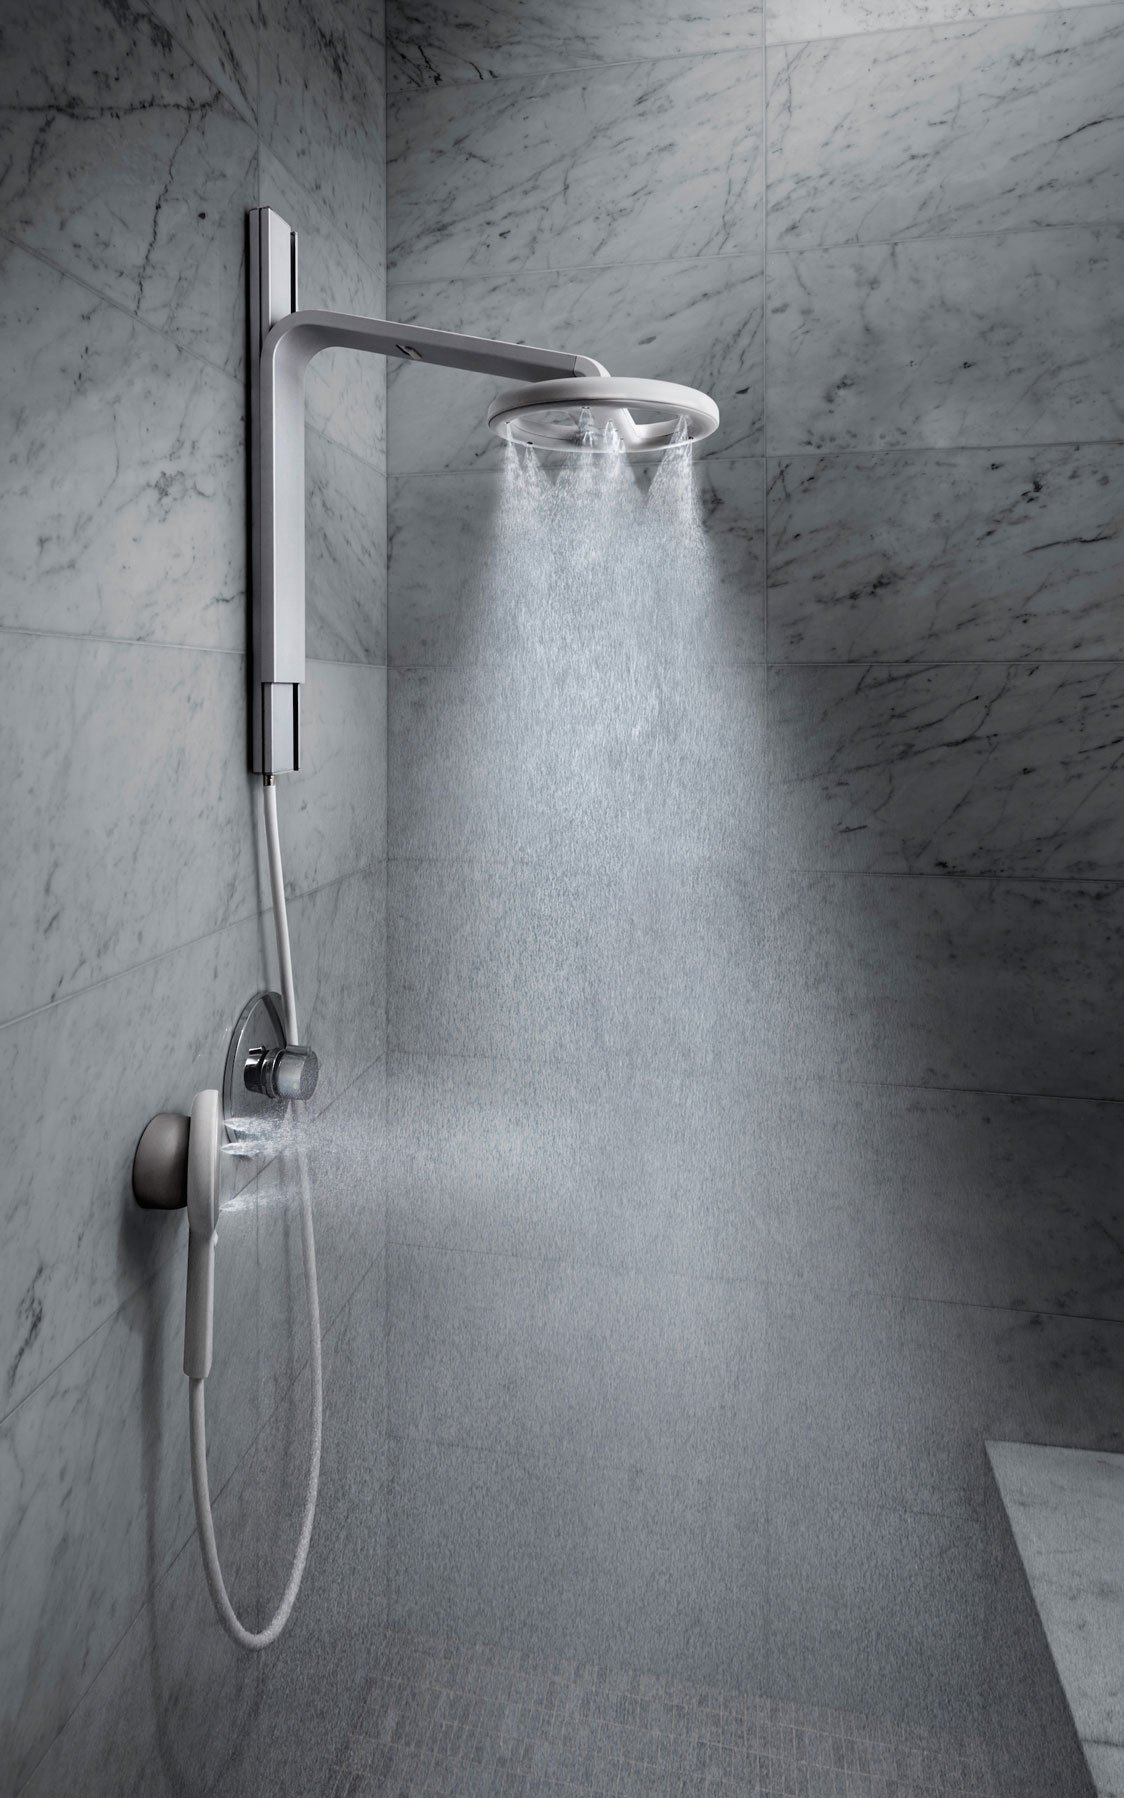 Nebia Spa Shower: Luxury Water Innovation. Sustainable Atomizing Shower System with 10'' Head, Handheld Wand, Adjustable Height. Award Winning Design, Aluminum, Easy DIY Install. Made in USA. by Nebia (Image #3)